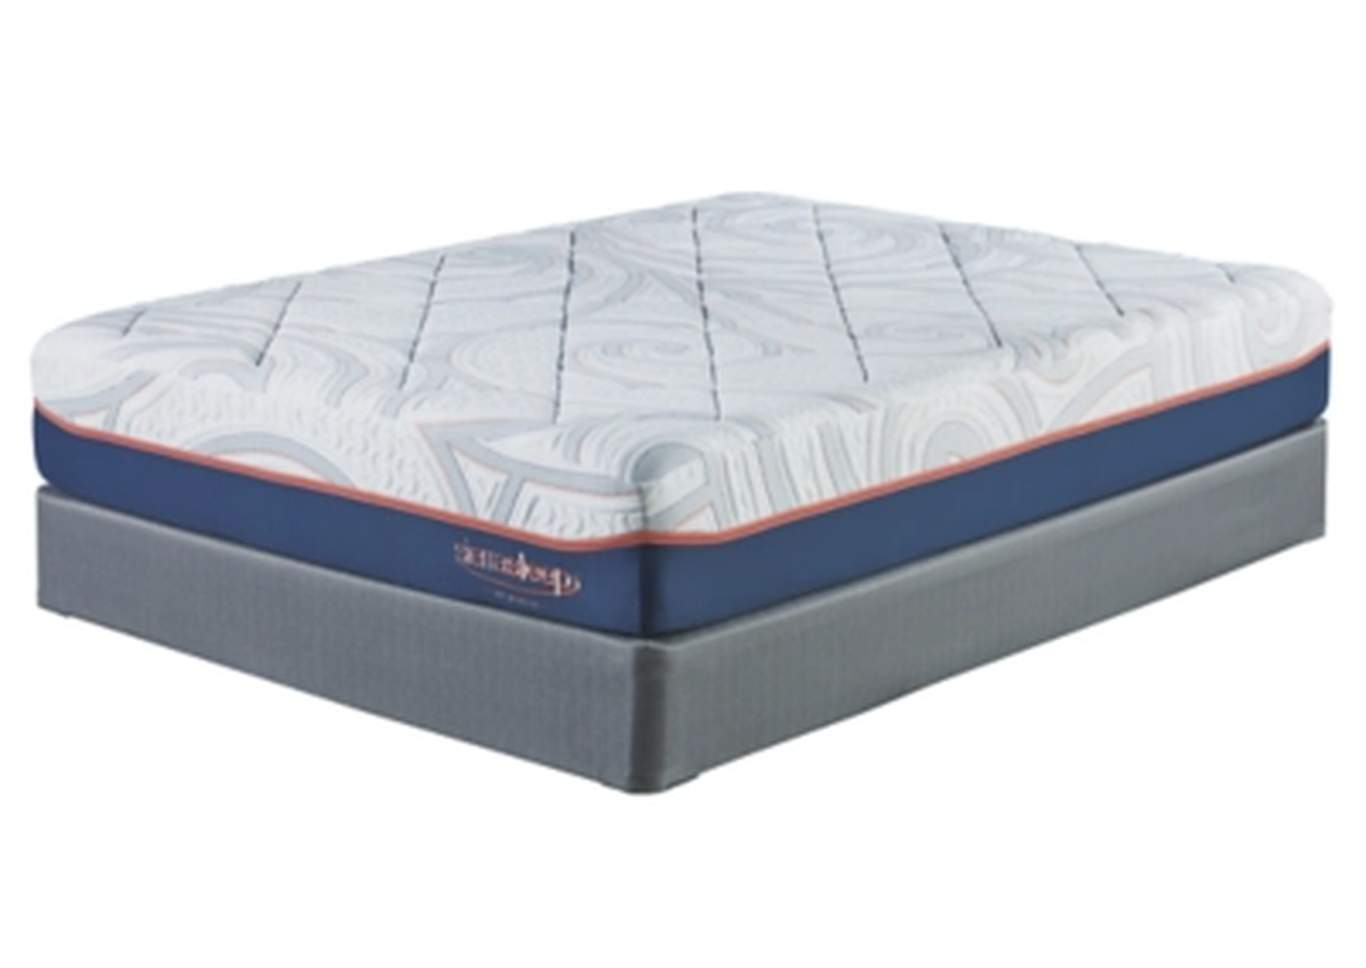 12 Inch MyGel Twin Mattress,Sierra Sleep by Ashley